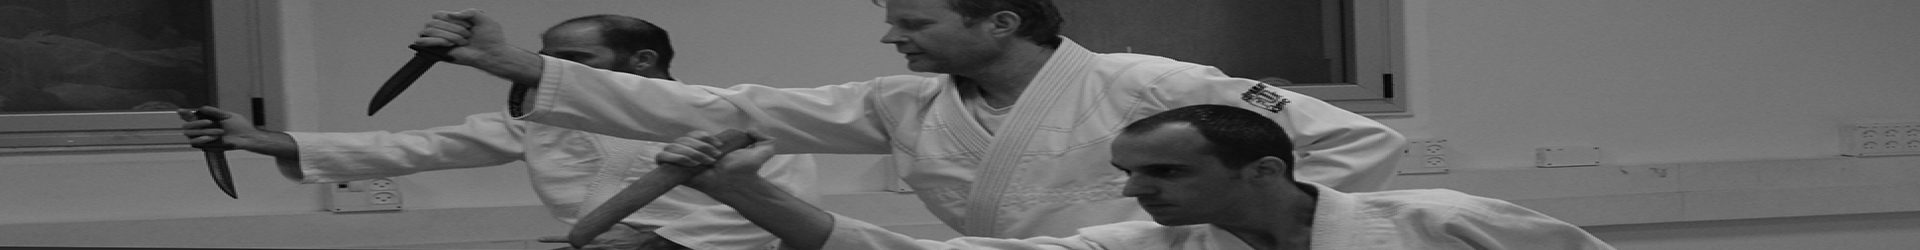 "Total Disaster – Memories from the times the book ""Total Aikido"" was pictured at the Yoshinkan Honbu Dojo"